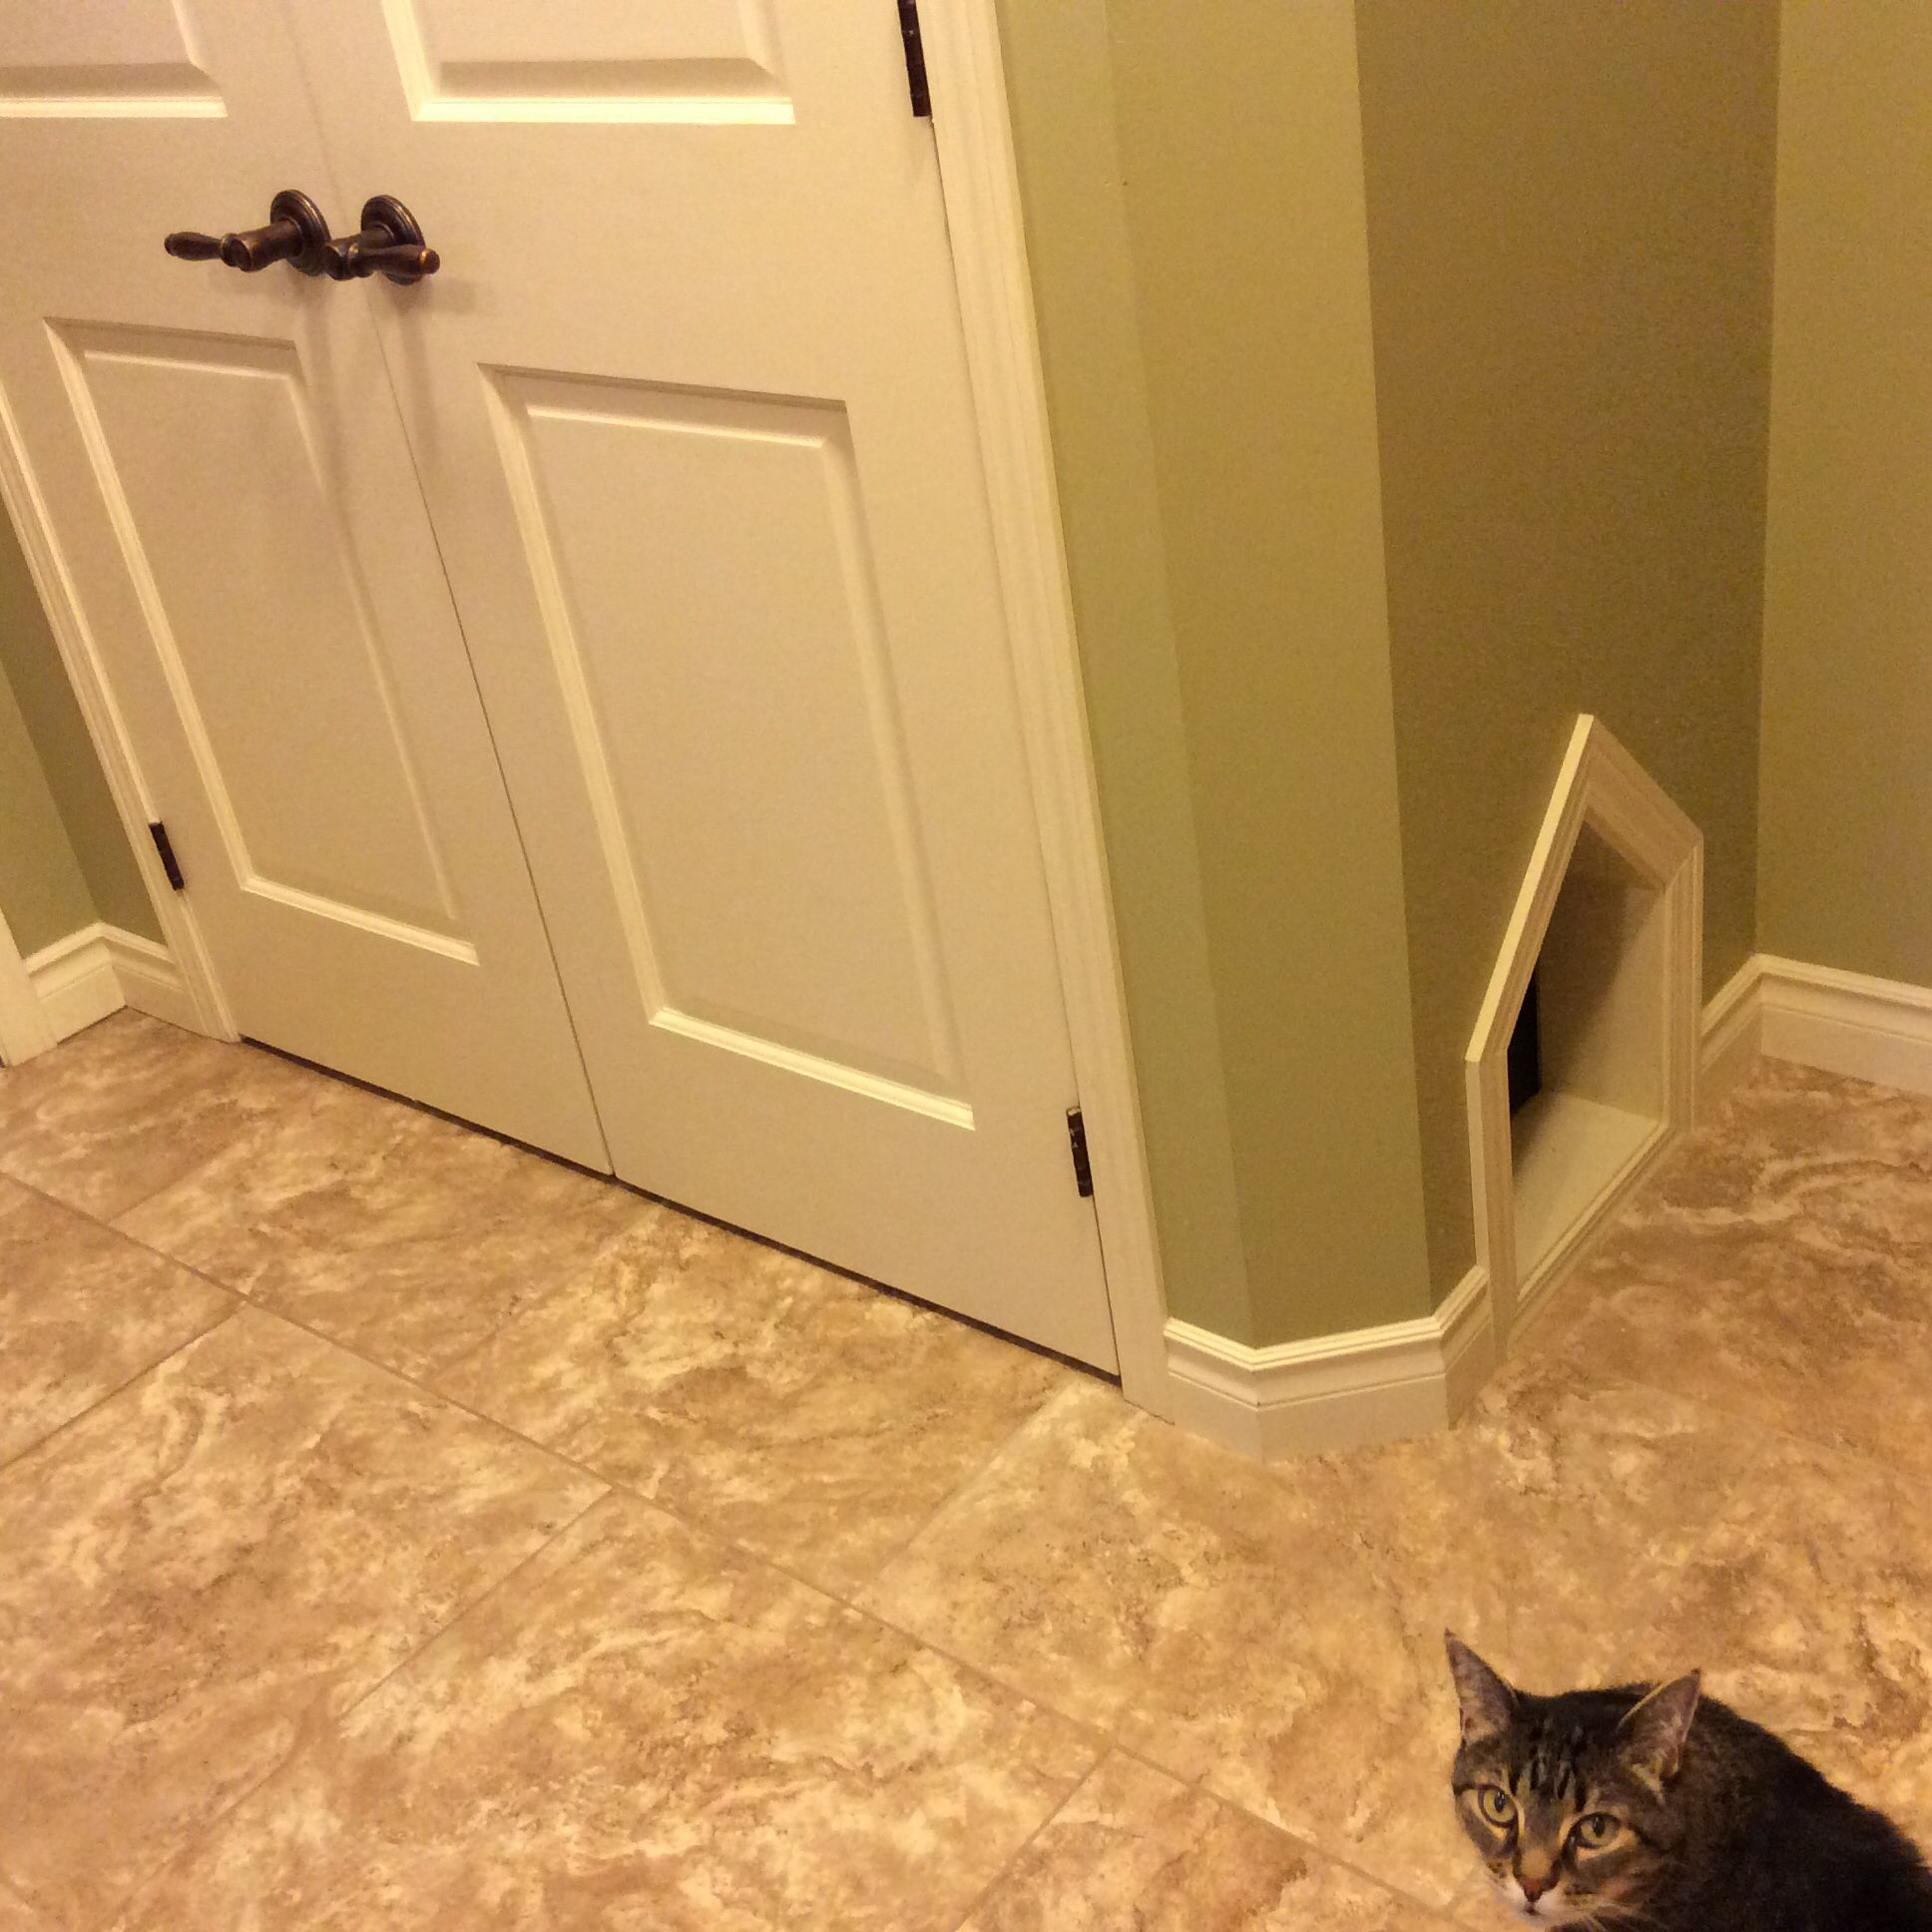 Cat Litter Box Closet And Like OMG! Get Some Yourself Some Pawtastic  Adorable Cat Apparel